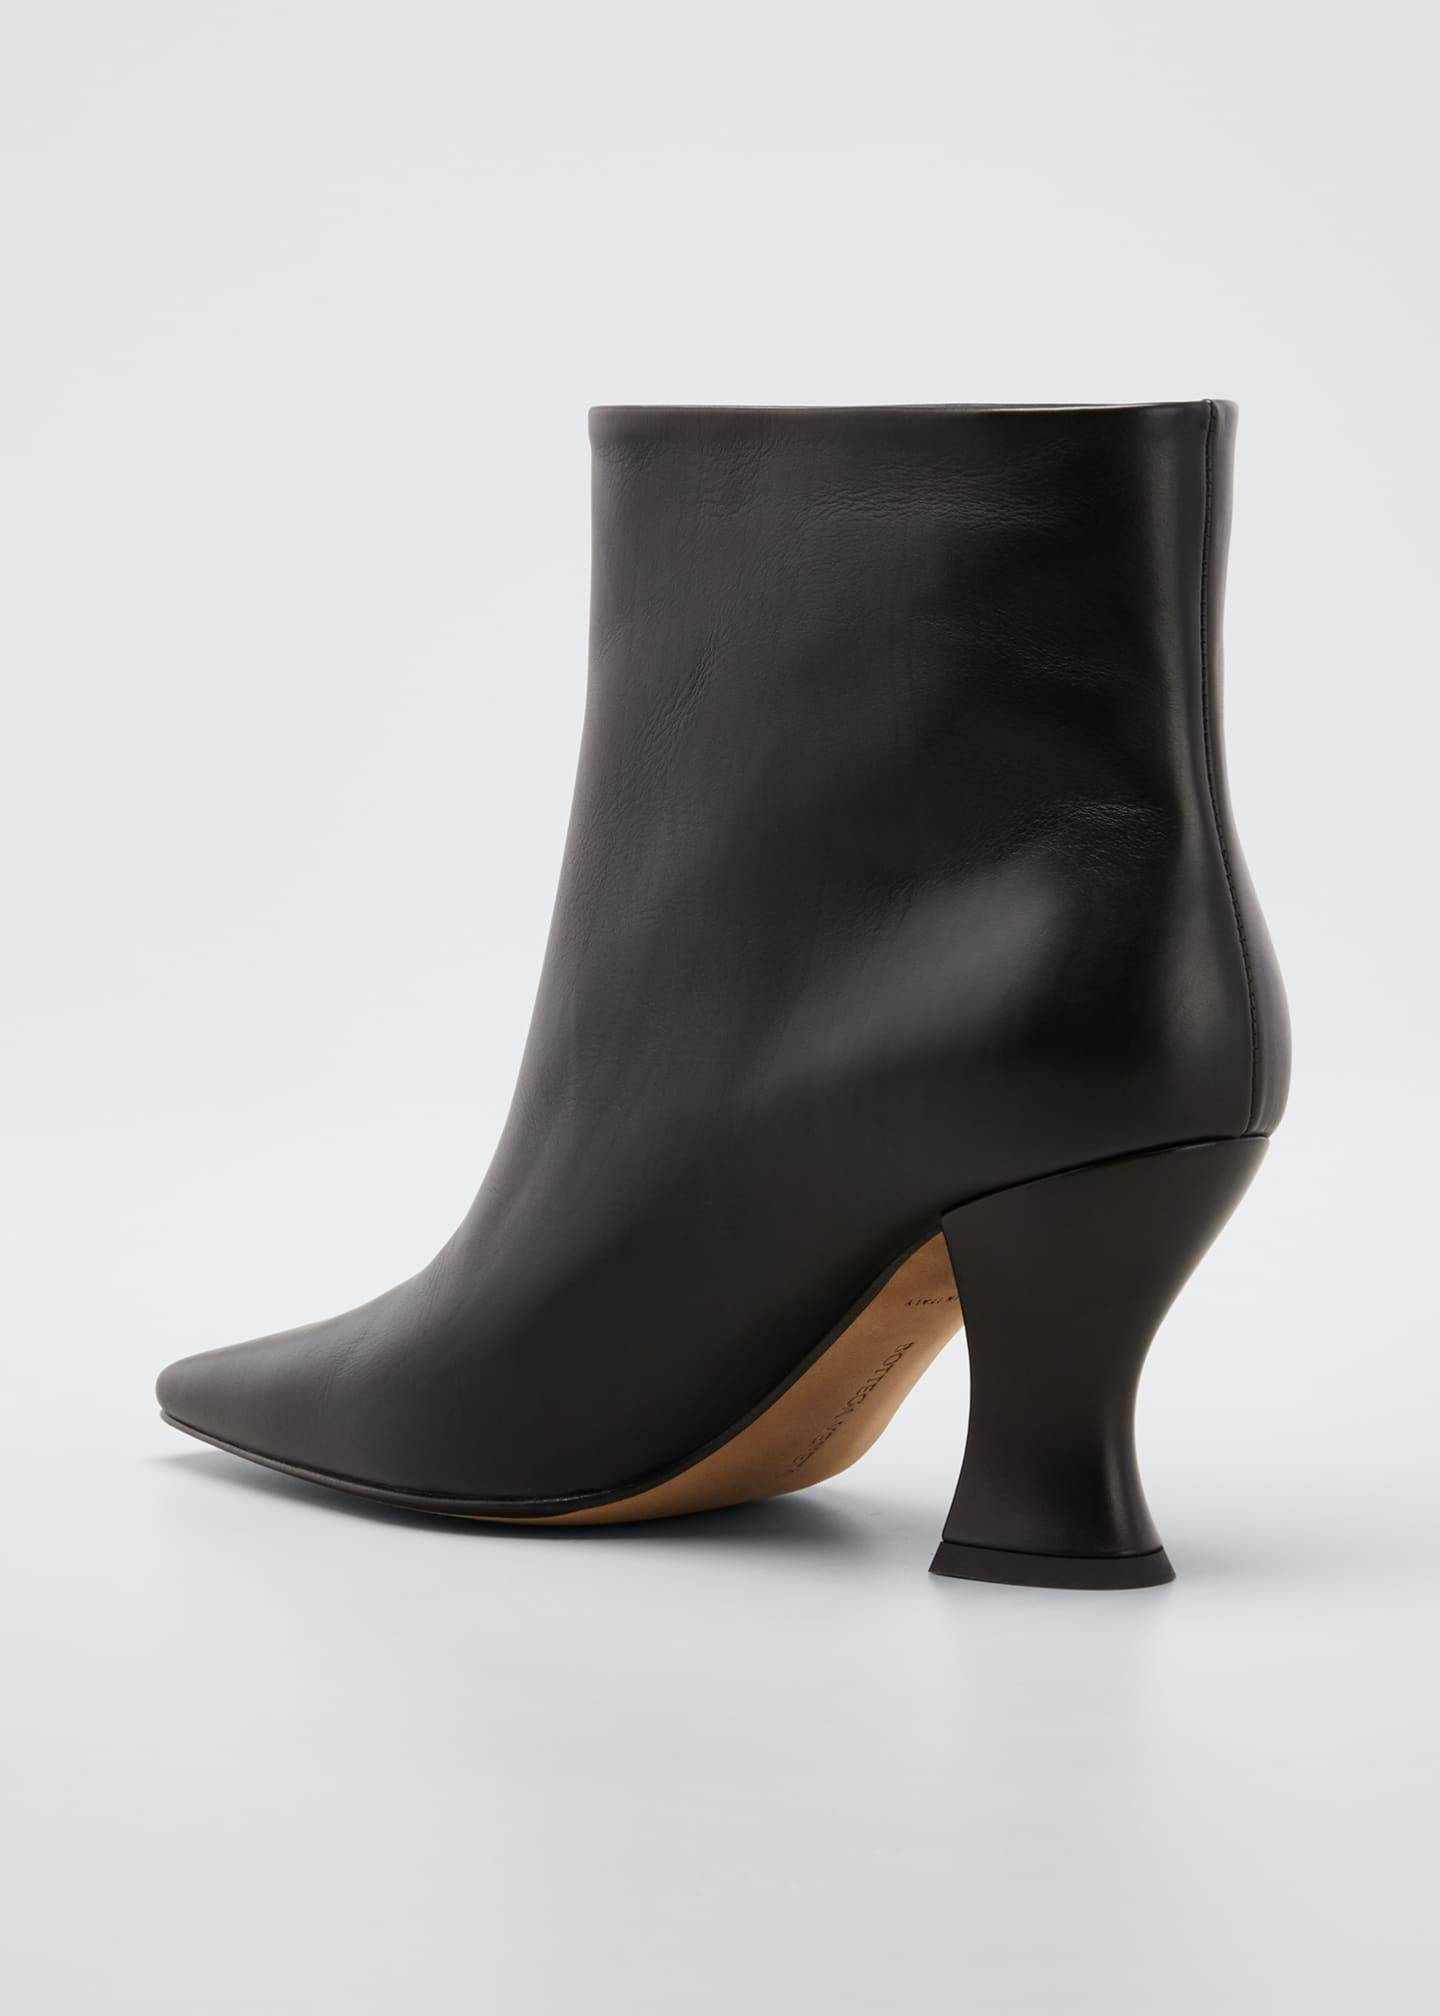 Image 4 of 5: Cloud Calf Ankle Booties